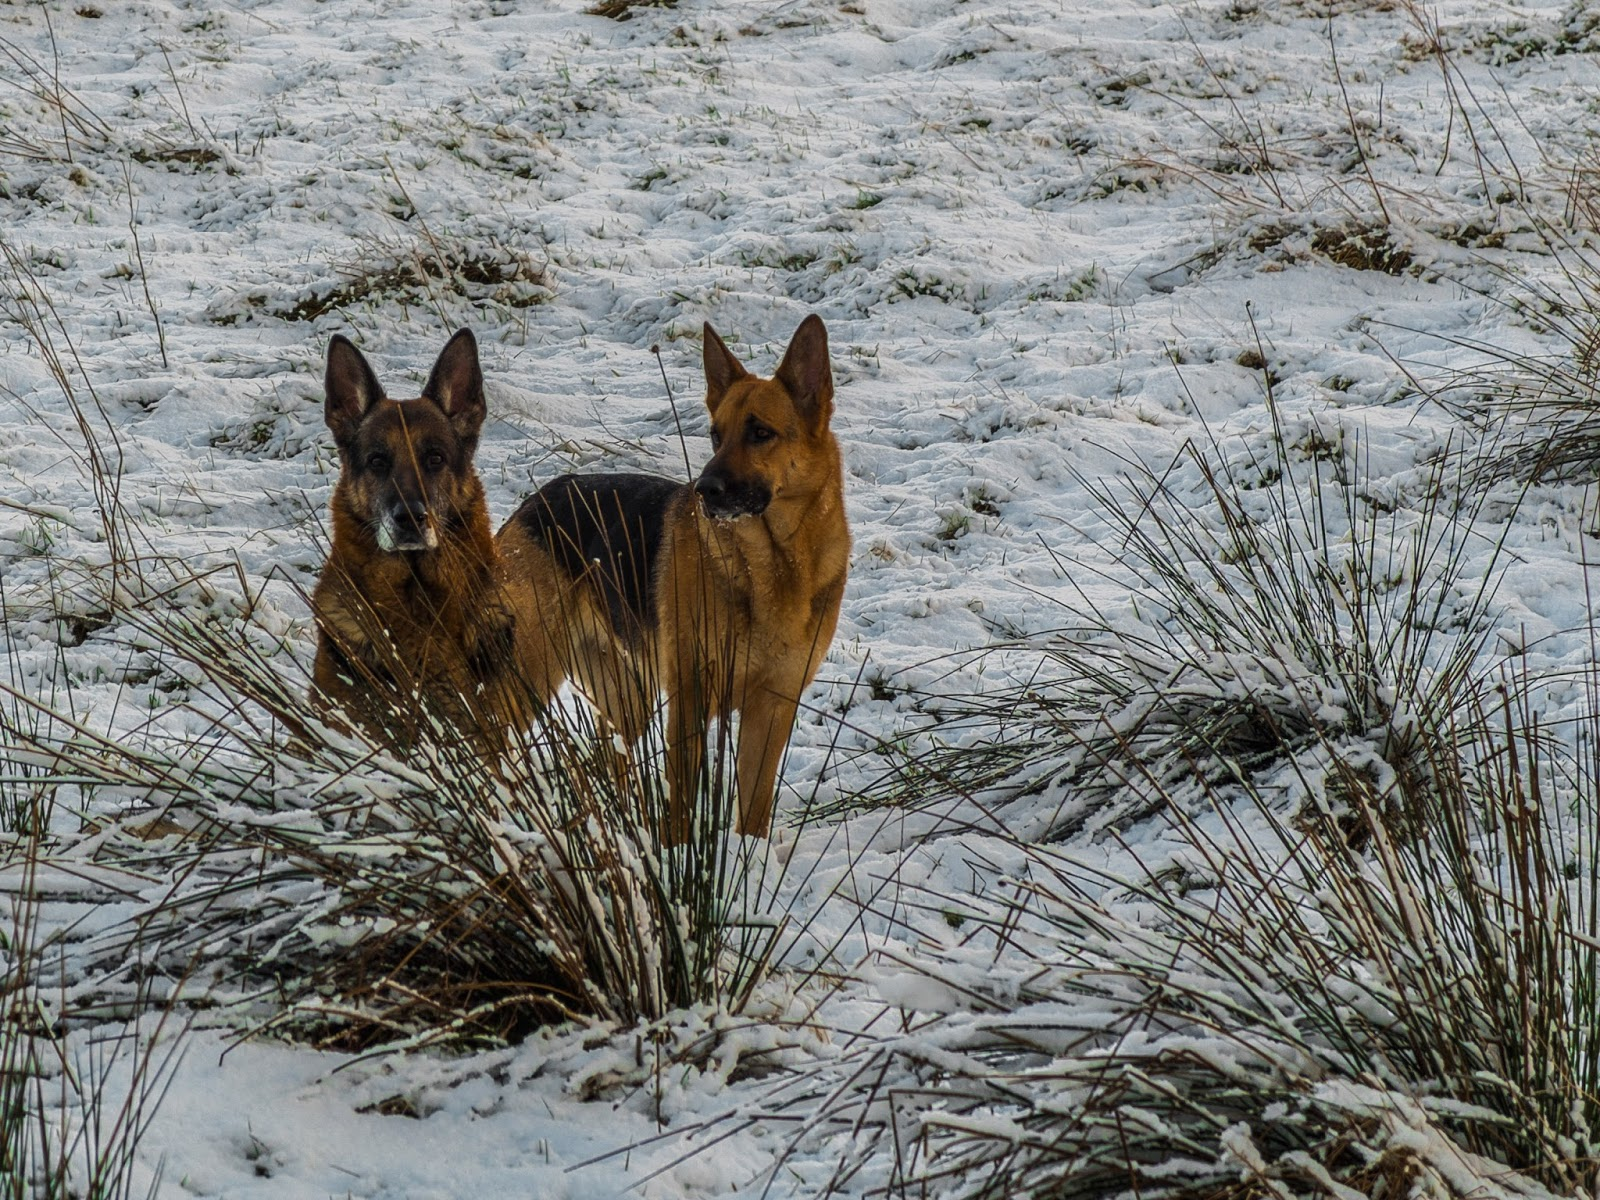 German Shepherd male and female in the snow on a hill.